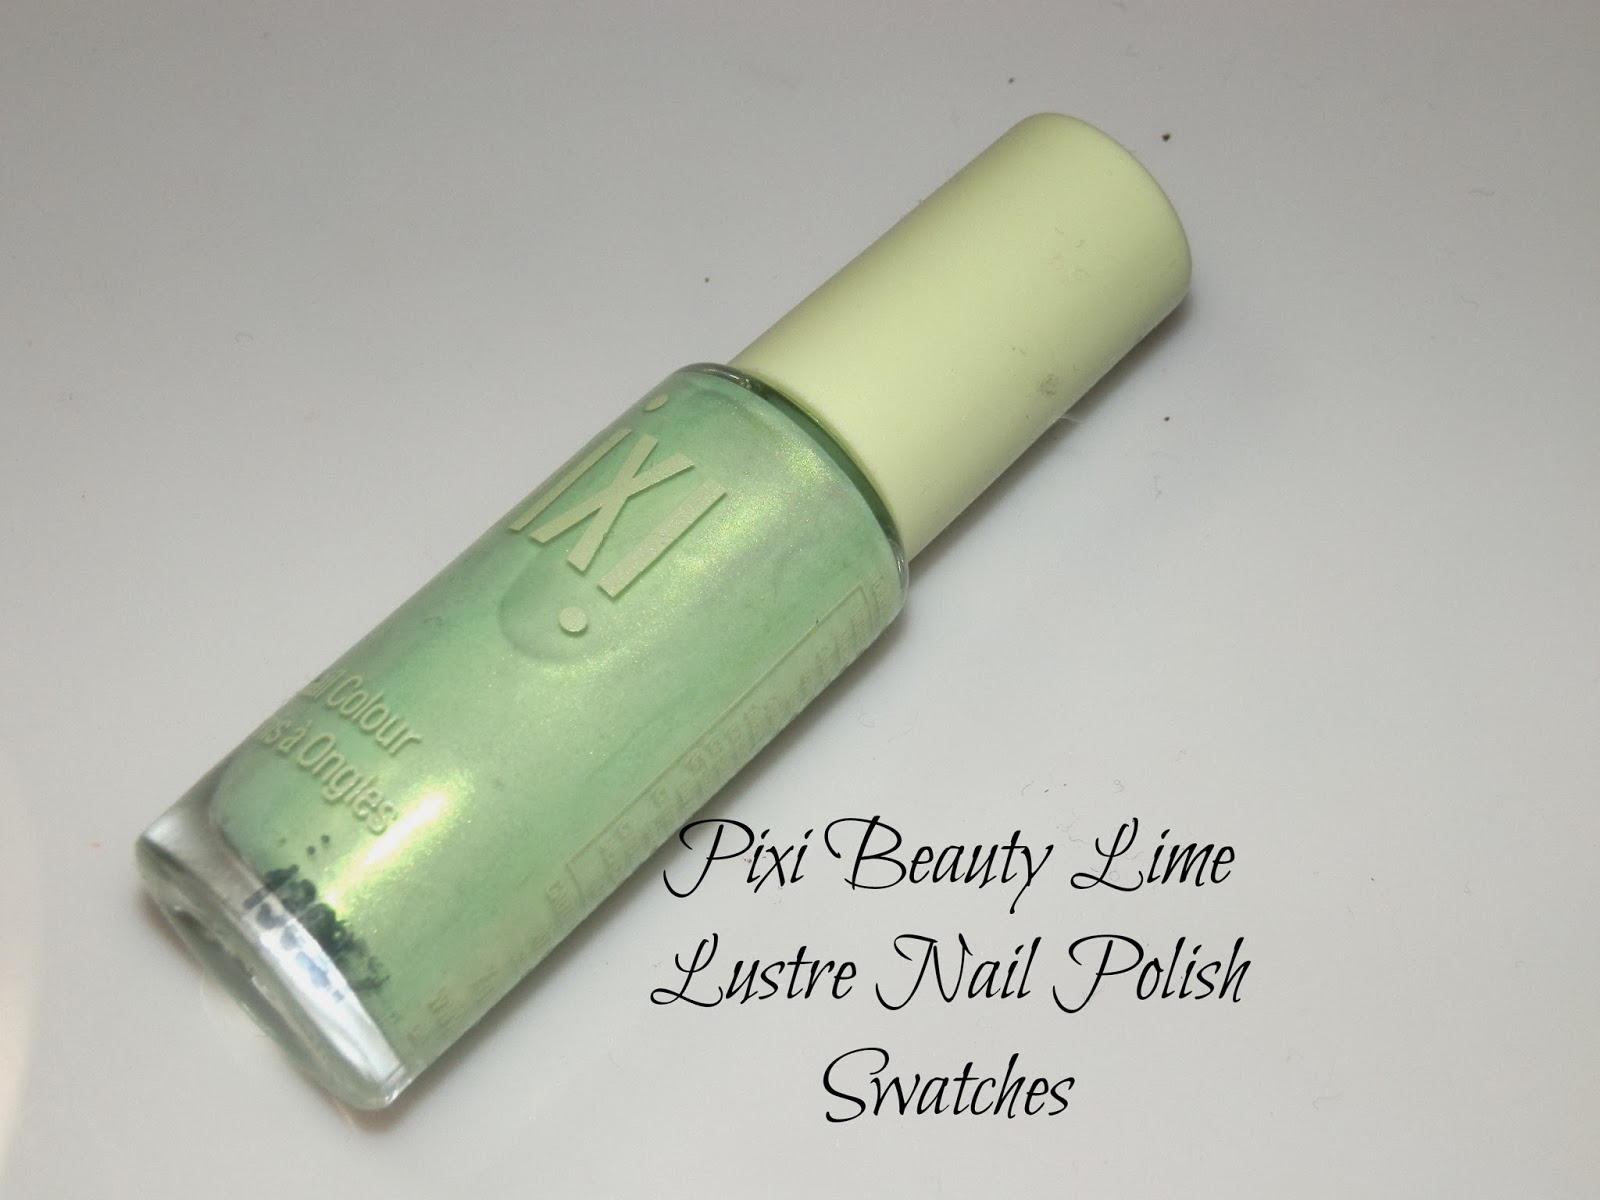 Pixi Beauty Lime Lustre Nail Polish